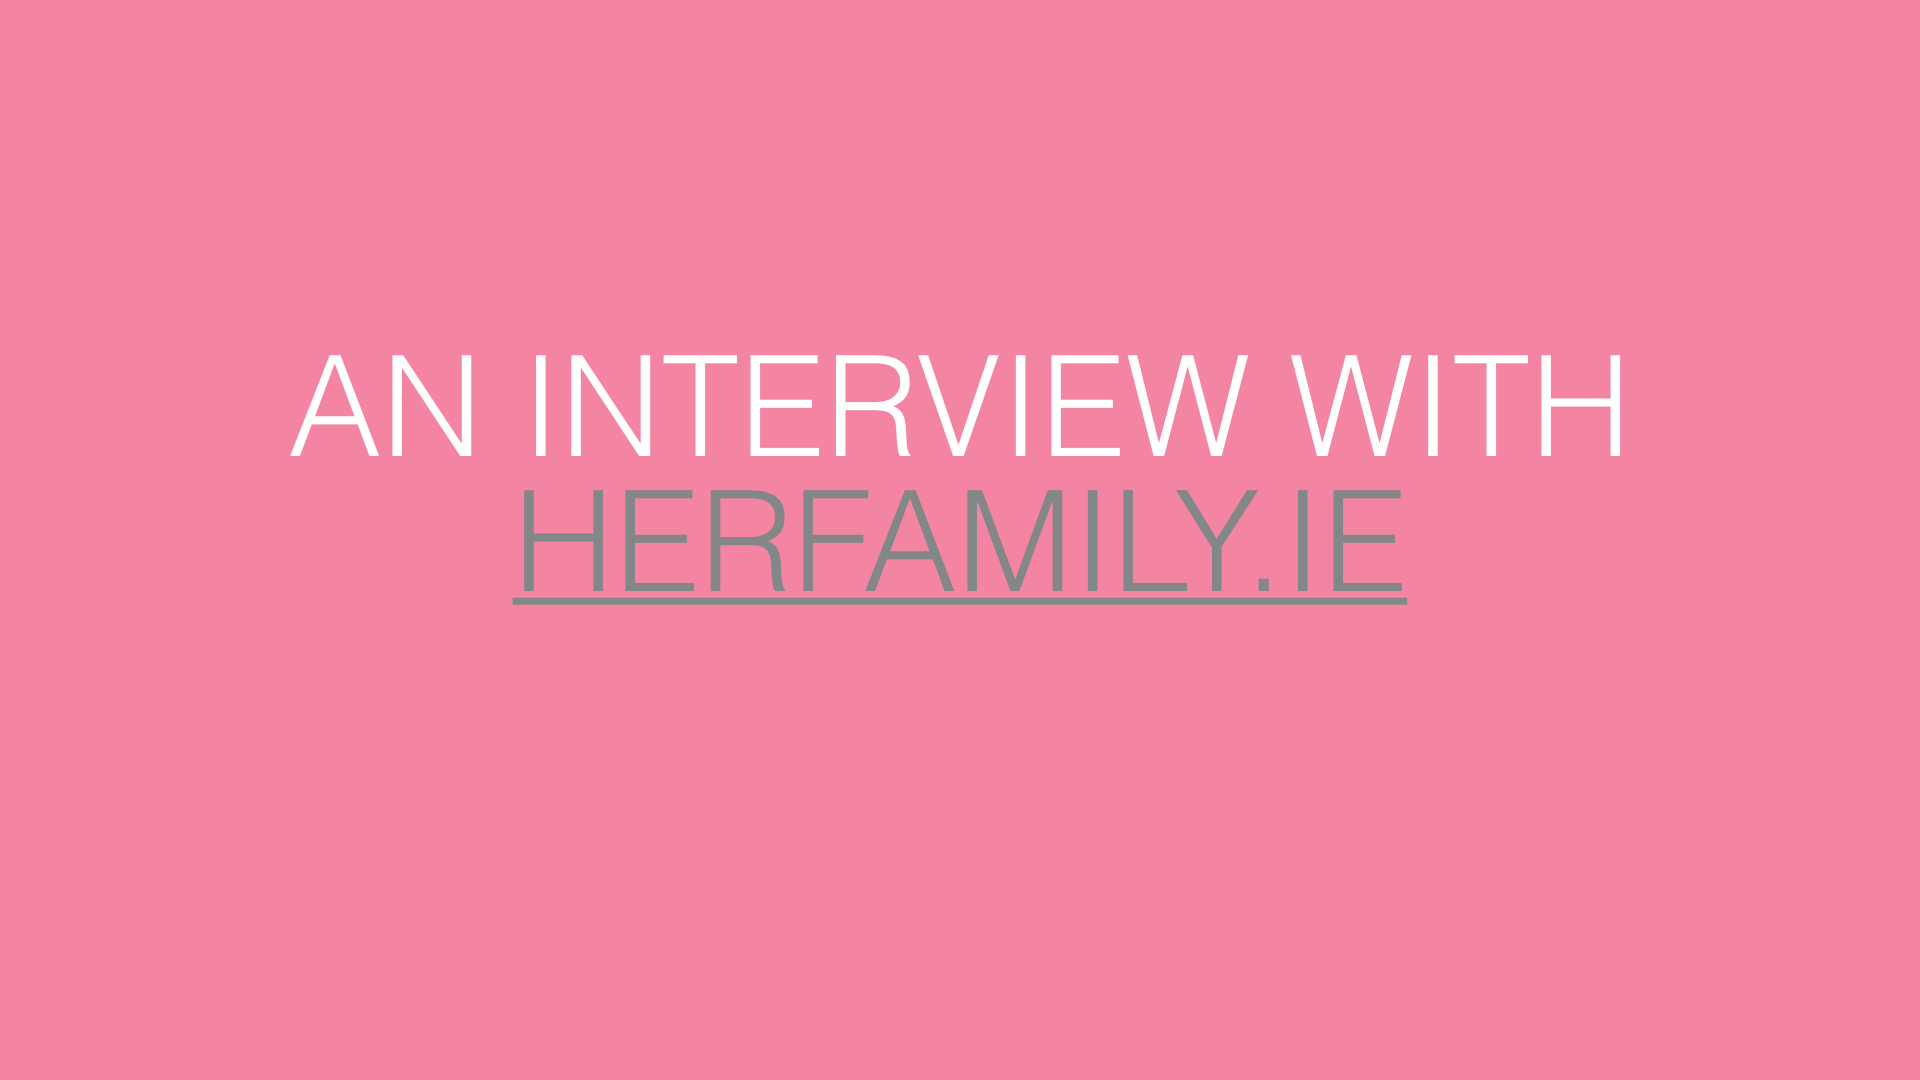 herfamily.ie